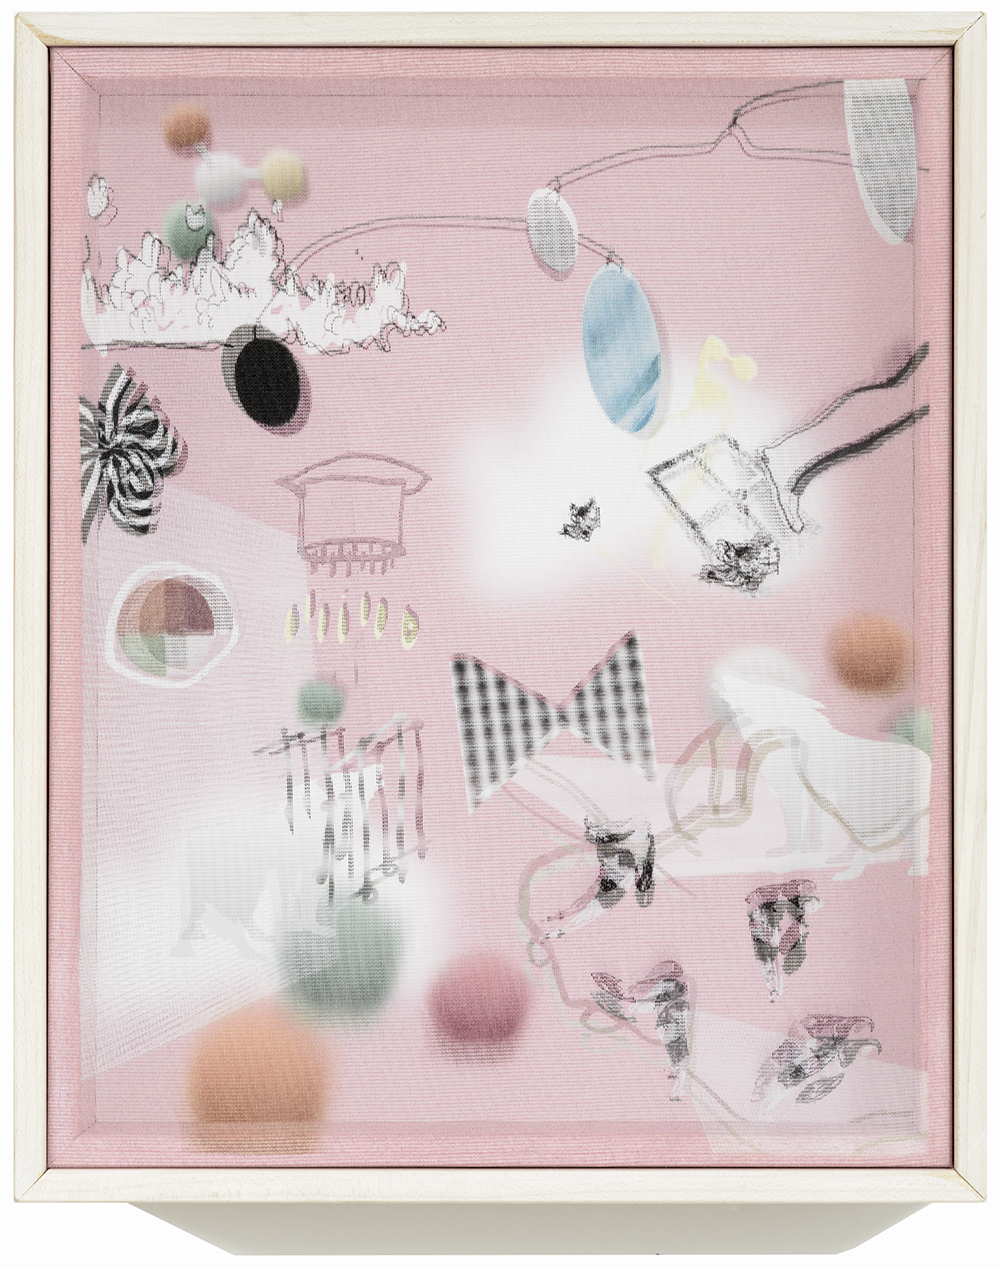 Adele Mills  The Birthday Party , 2016 8 x 10 inch Mixed Media / Kinetic Object Print on fabric over print on paper, framed in custom shadow-box From a limited edition of 5